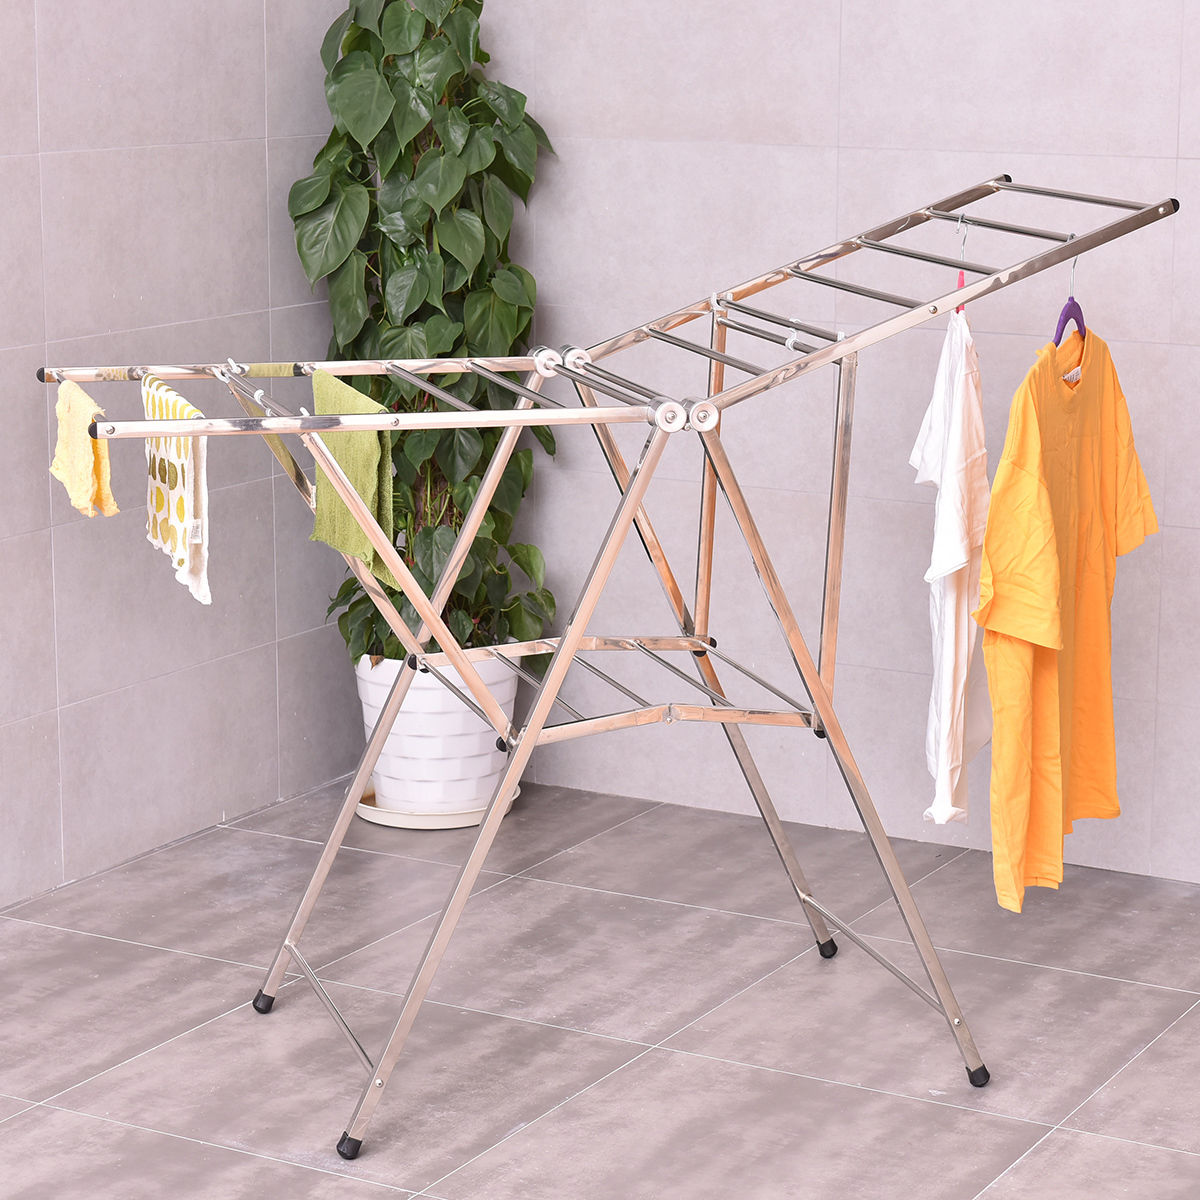 Costway 58'' Folding Clothes Drying Rack Laundry Dry Hanger Heavy Duty Stainless Steel